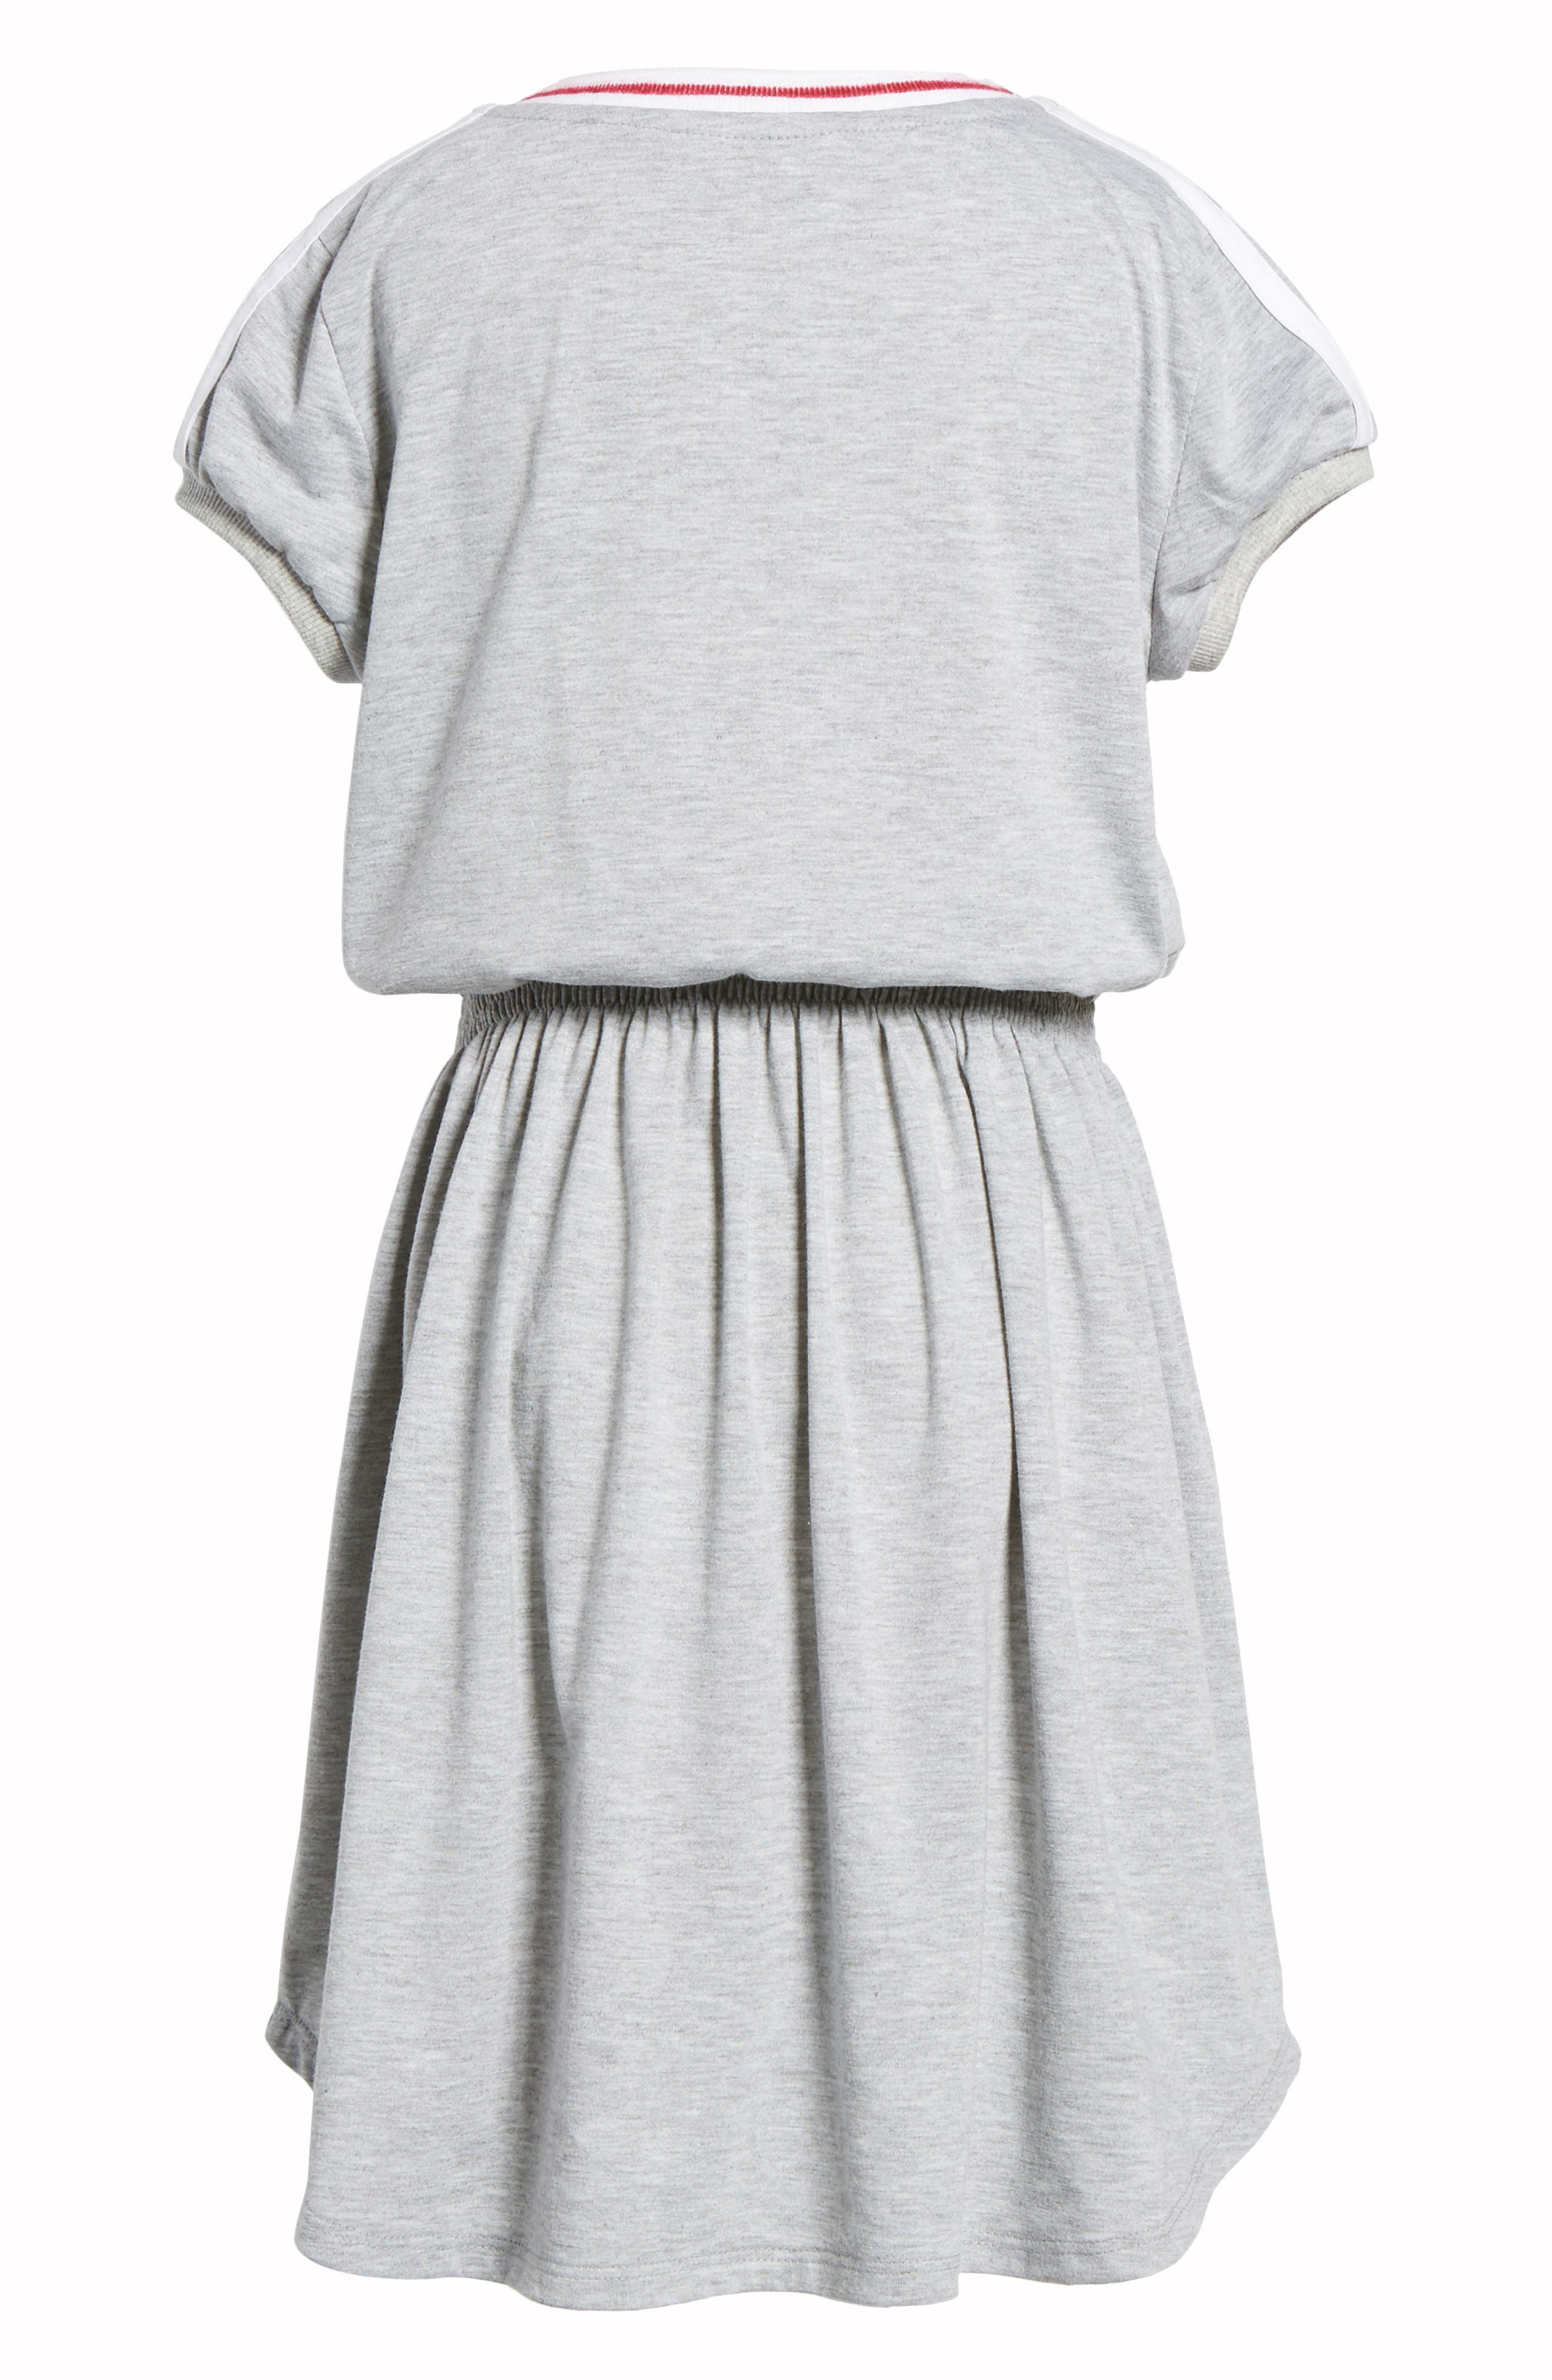 Knit Dress,                             Alternate thumbnail 3, color,                             Grey